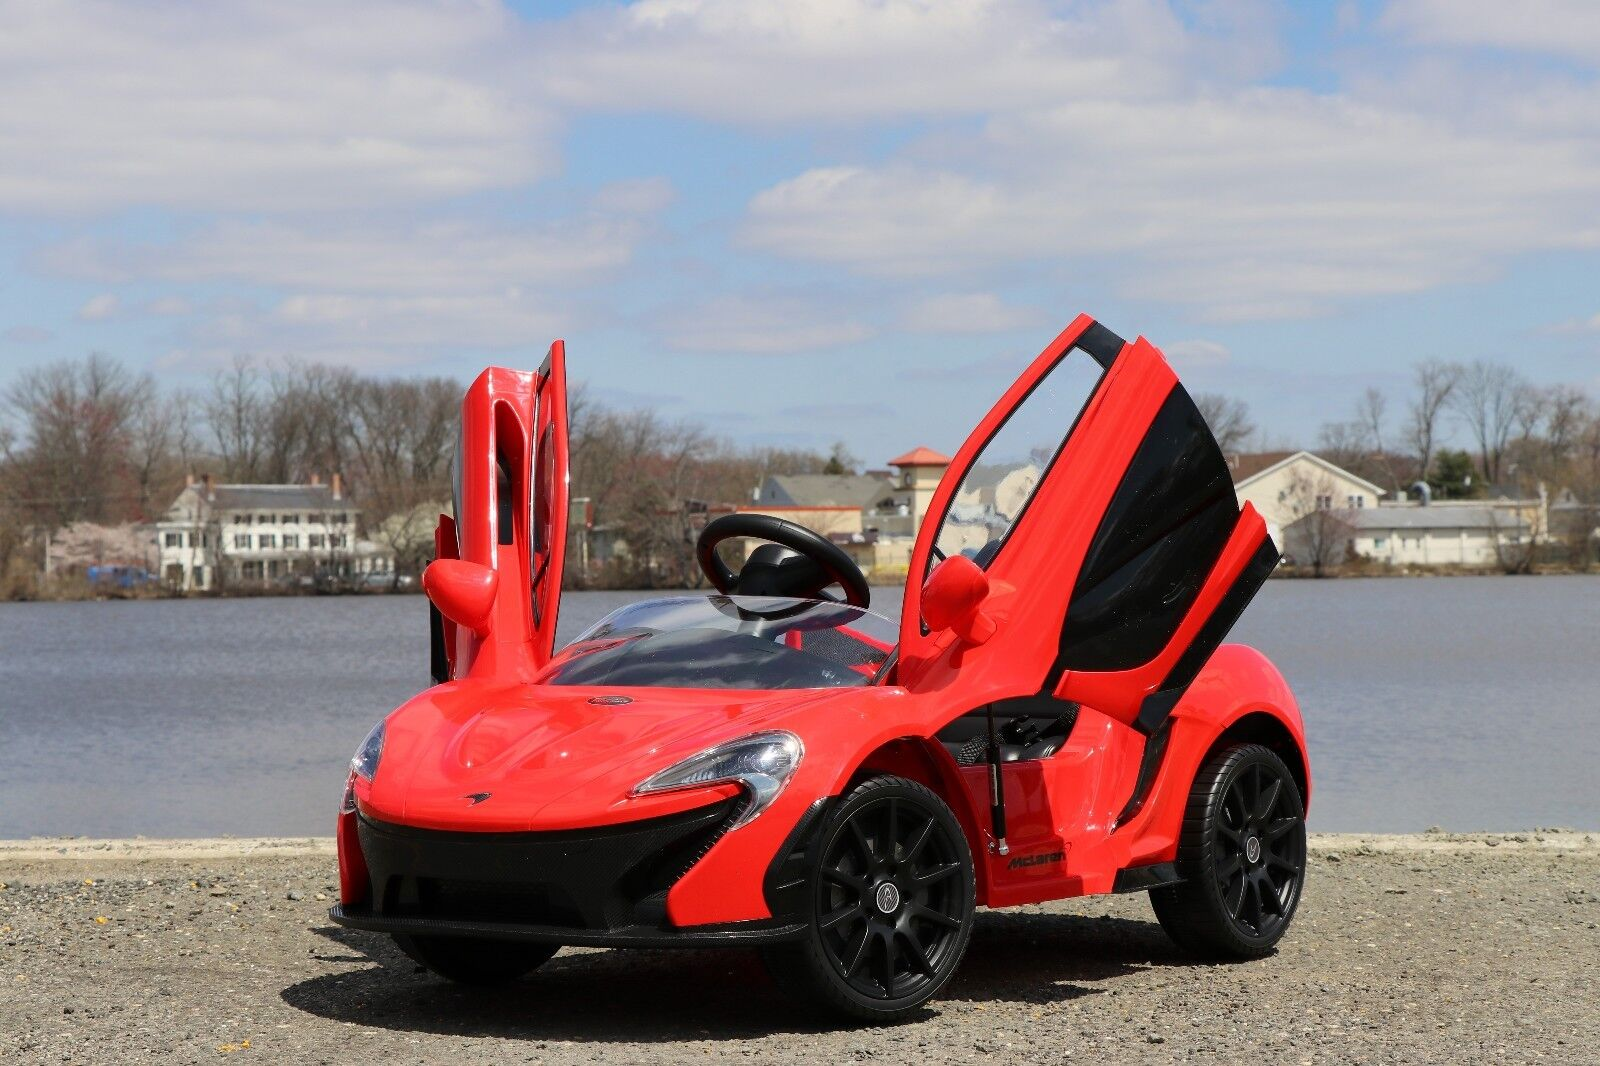 Mclaren P1 Red 12v-Dual Motor Electric Power Ride On Car wit